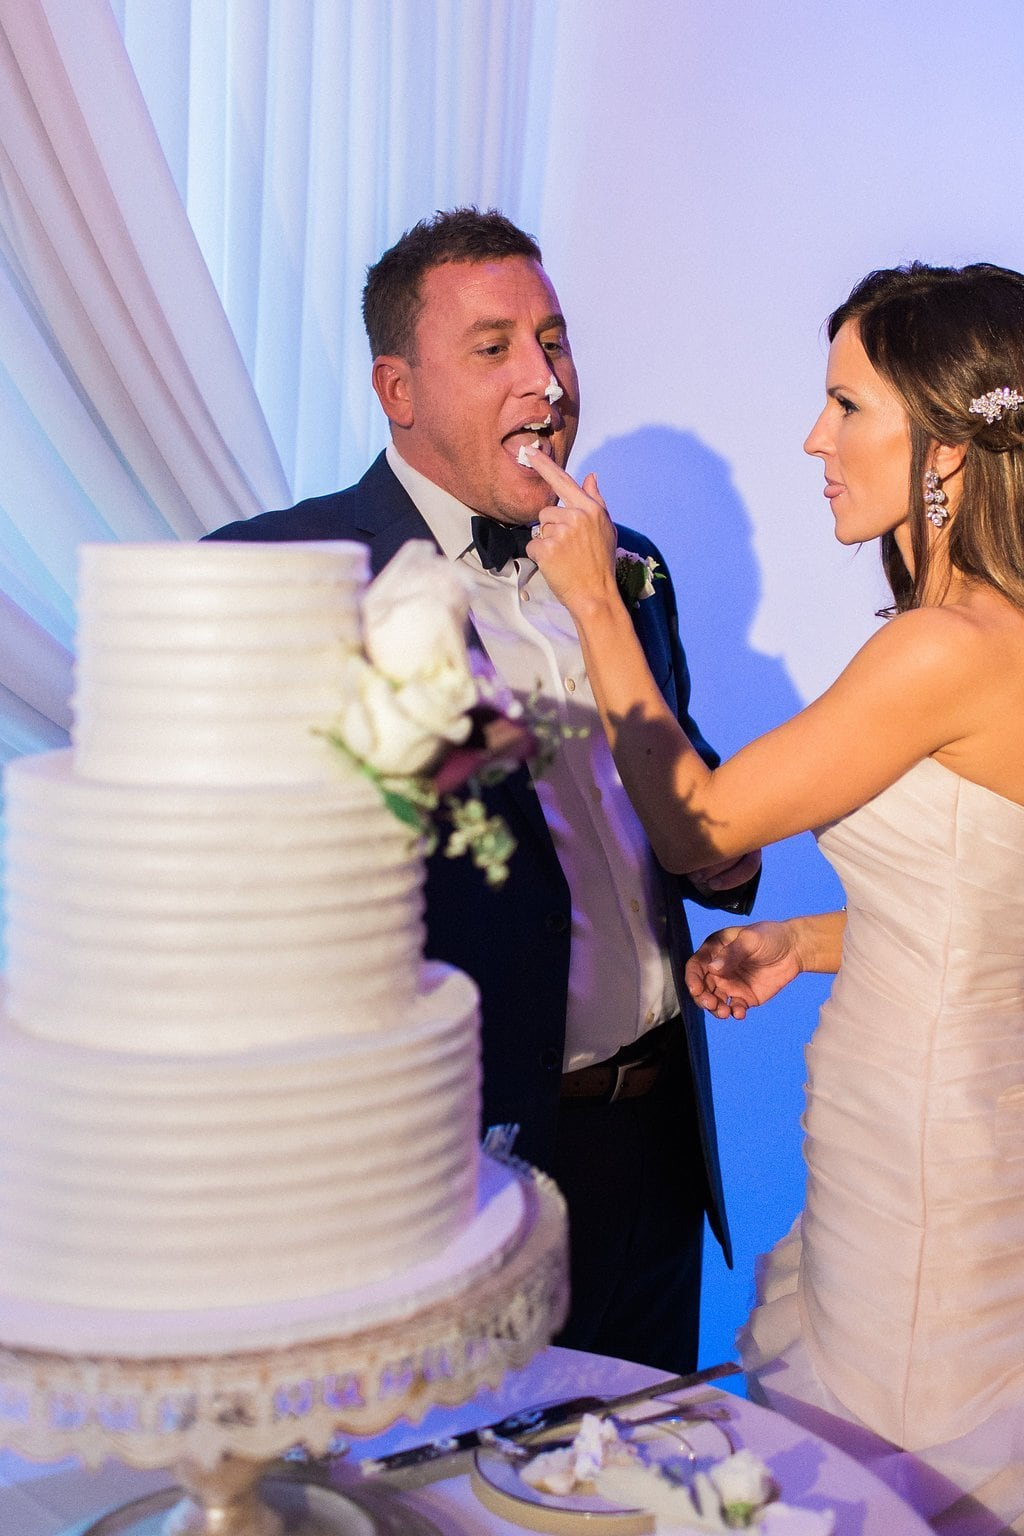 Bride and Groom cutting their wedding cake at their reception